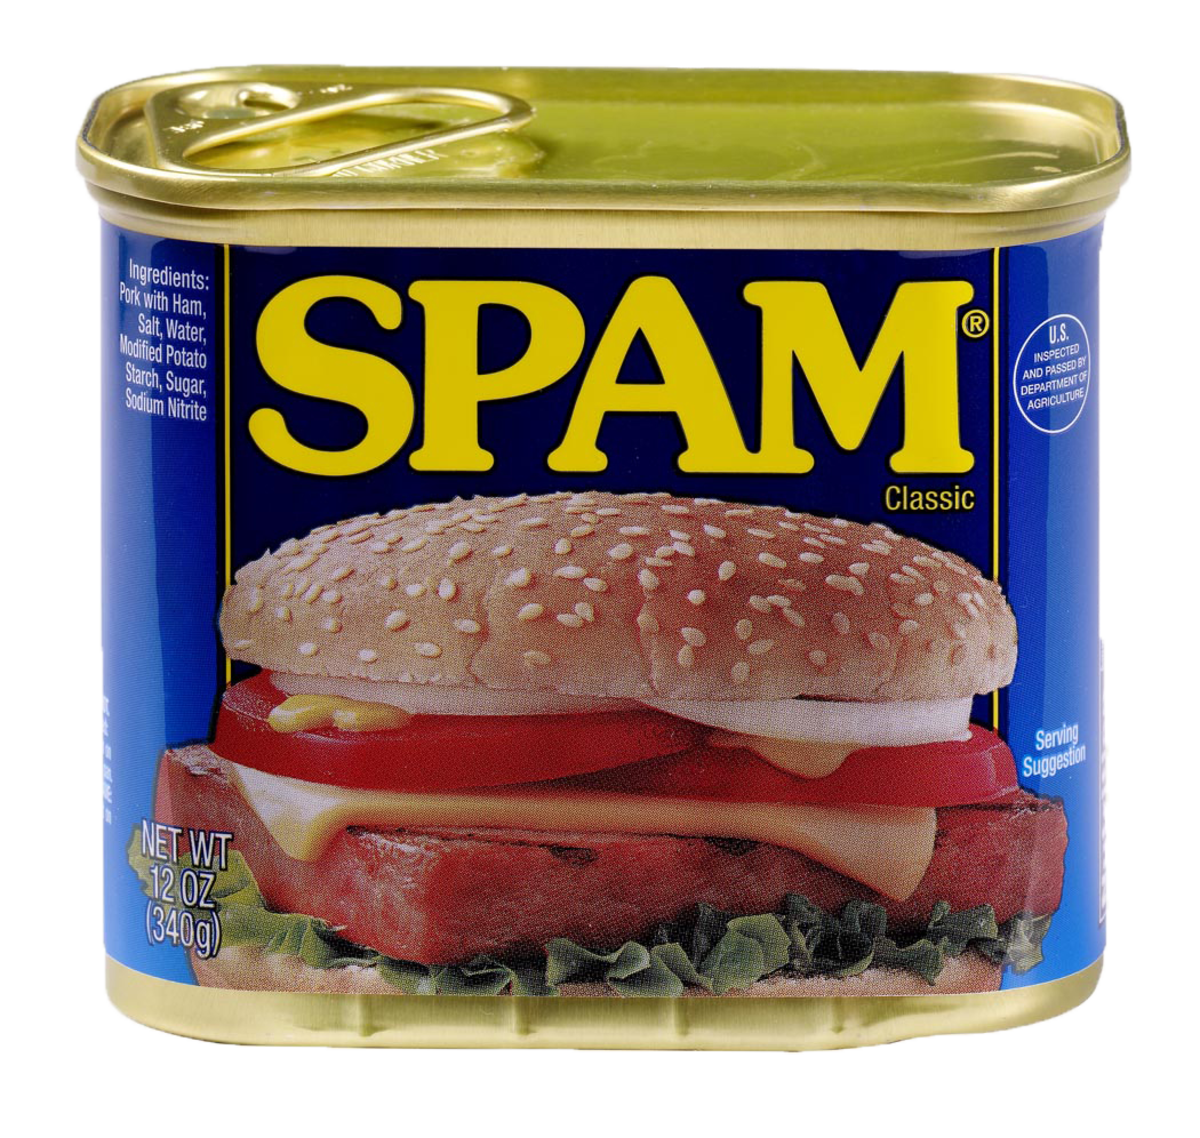 Spam blogs very often steal content from others online.